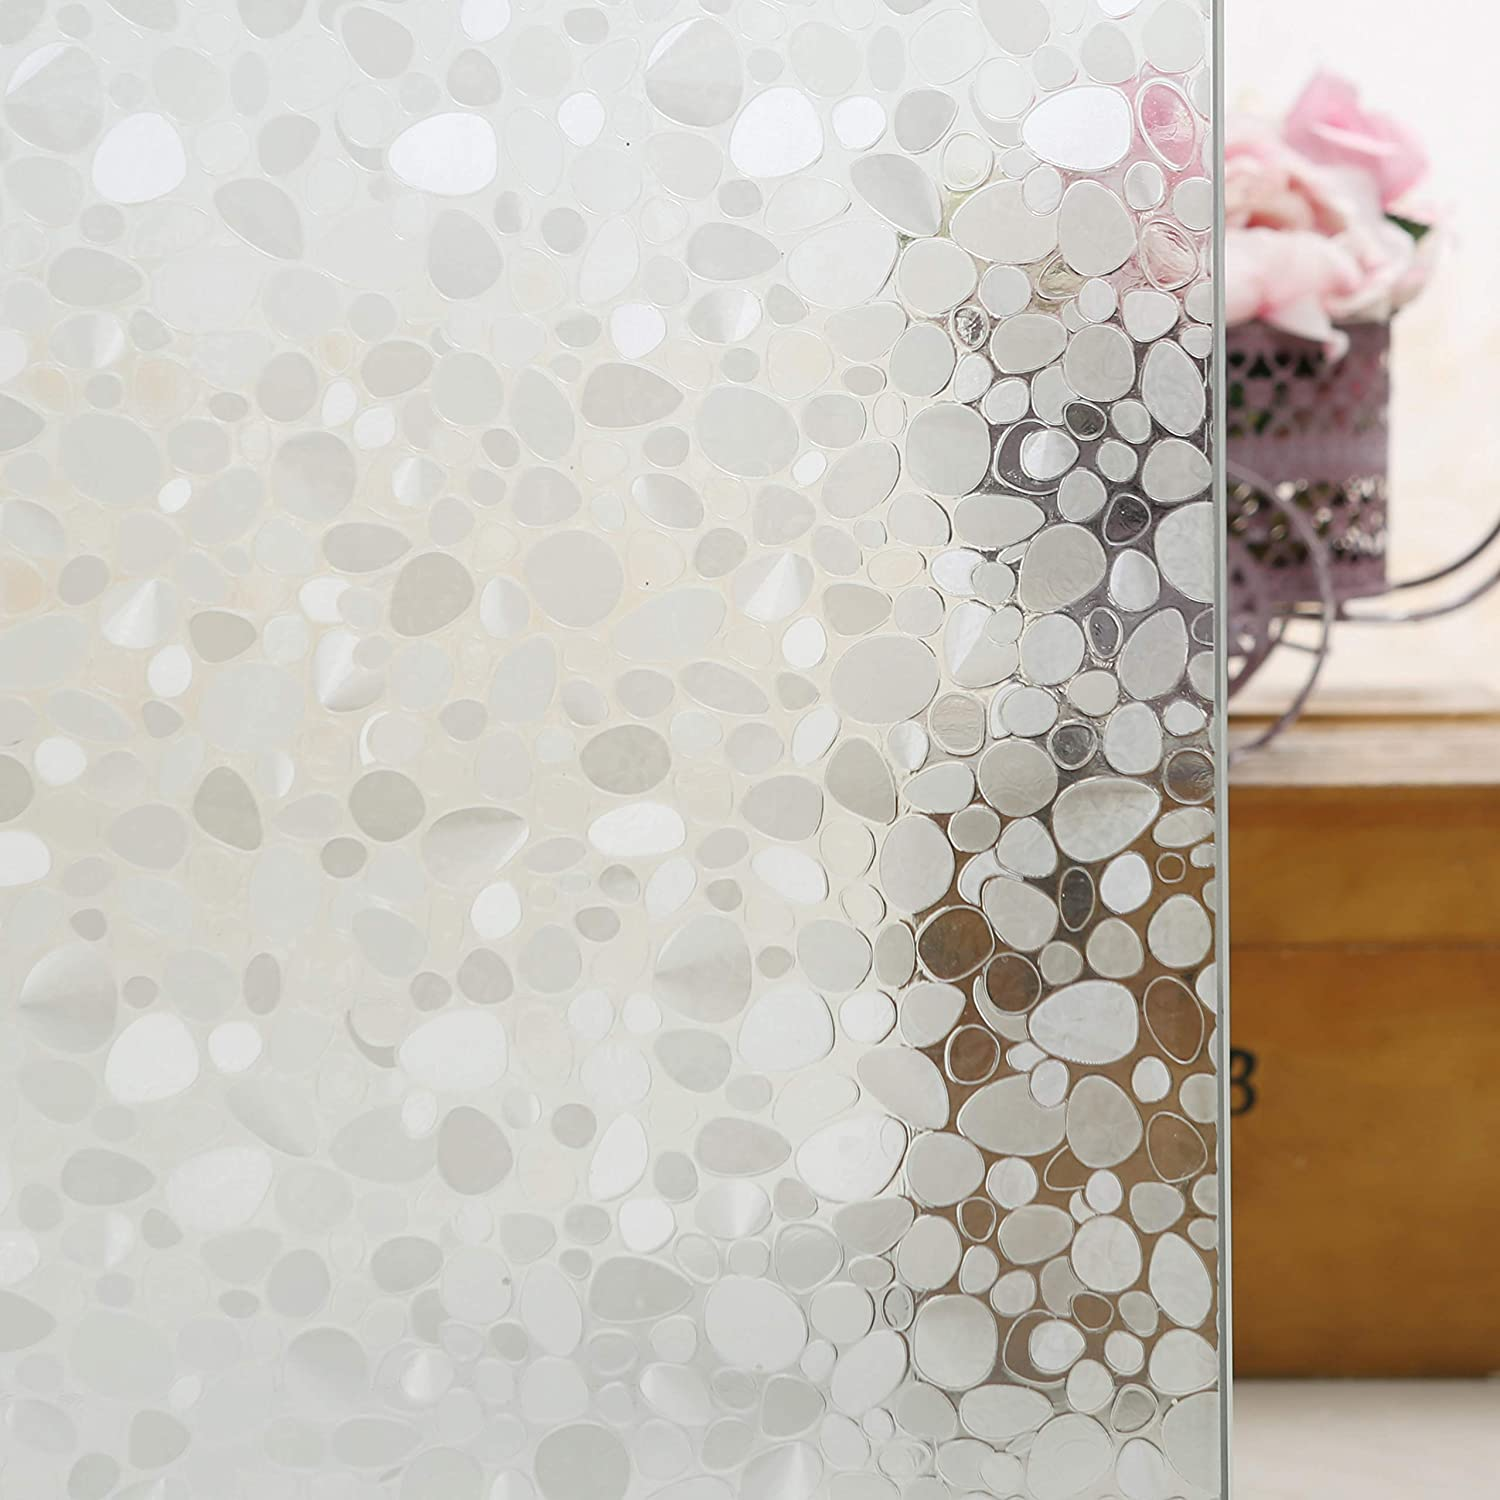 Jahoot Privacy Window Films, Translucent Glass Tint Static Cling Treatment for Home Security & Decorative, Heat Control, UV Stop - No Glue, No Residue, Easy Removal (Art Pebbles, 35.4x78.7 Inches)